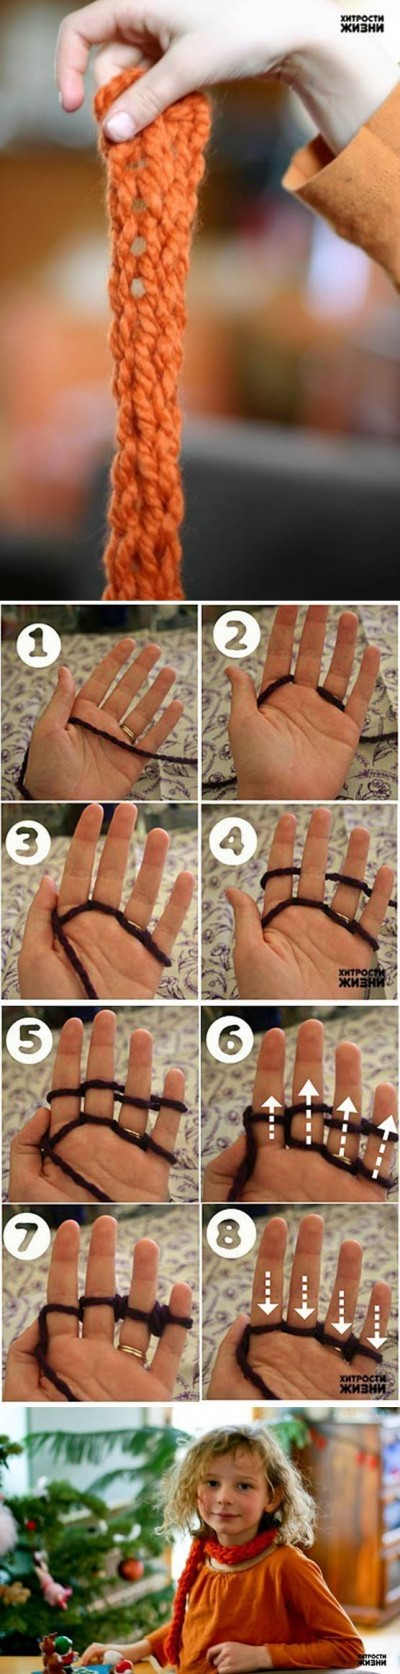 How to make Quick Finger Knitting step by step DIY tutorial instructions